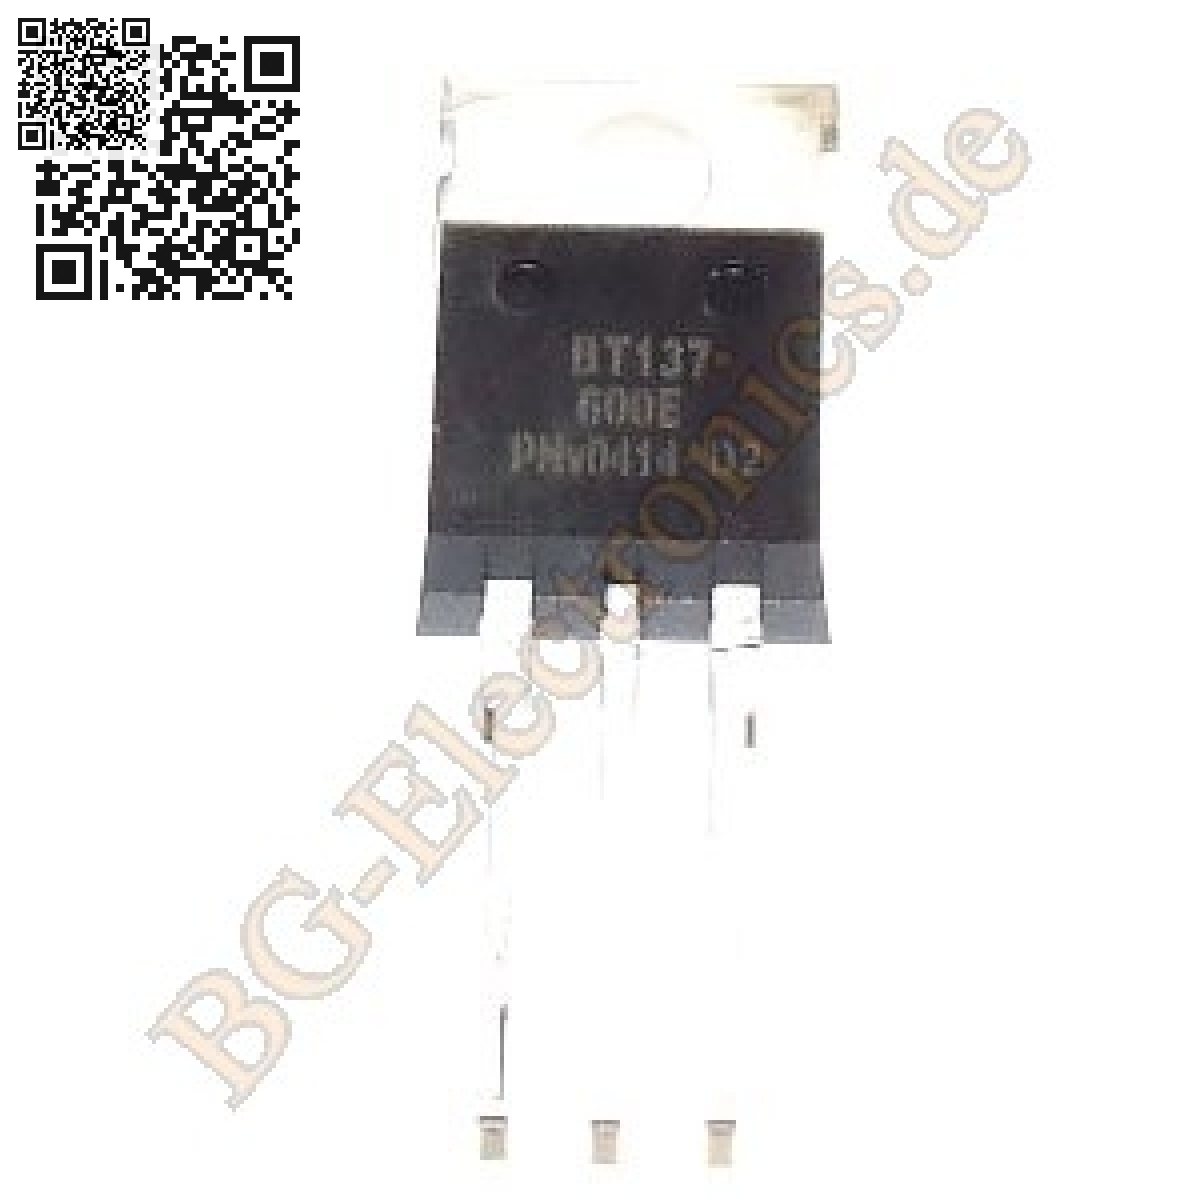 2-x-BT137-600E-TRIAC-Philips-TO-220-2pcs